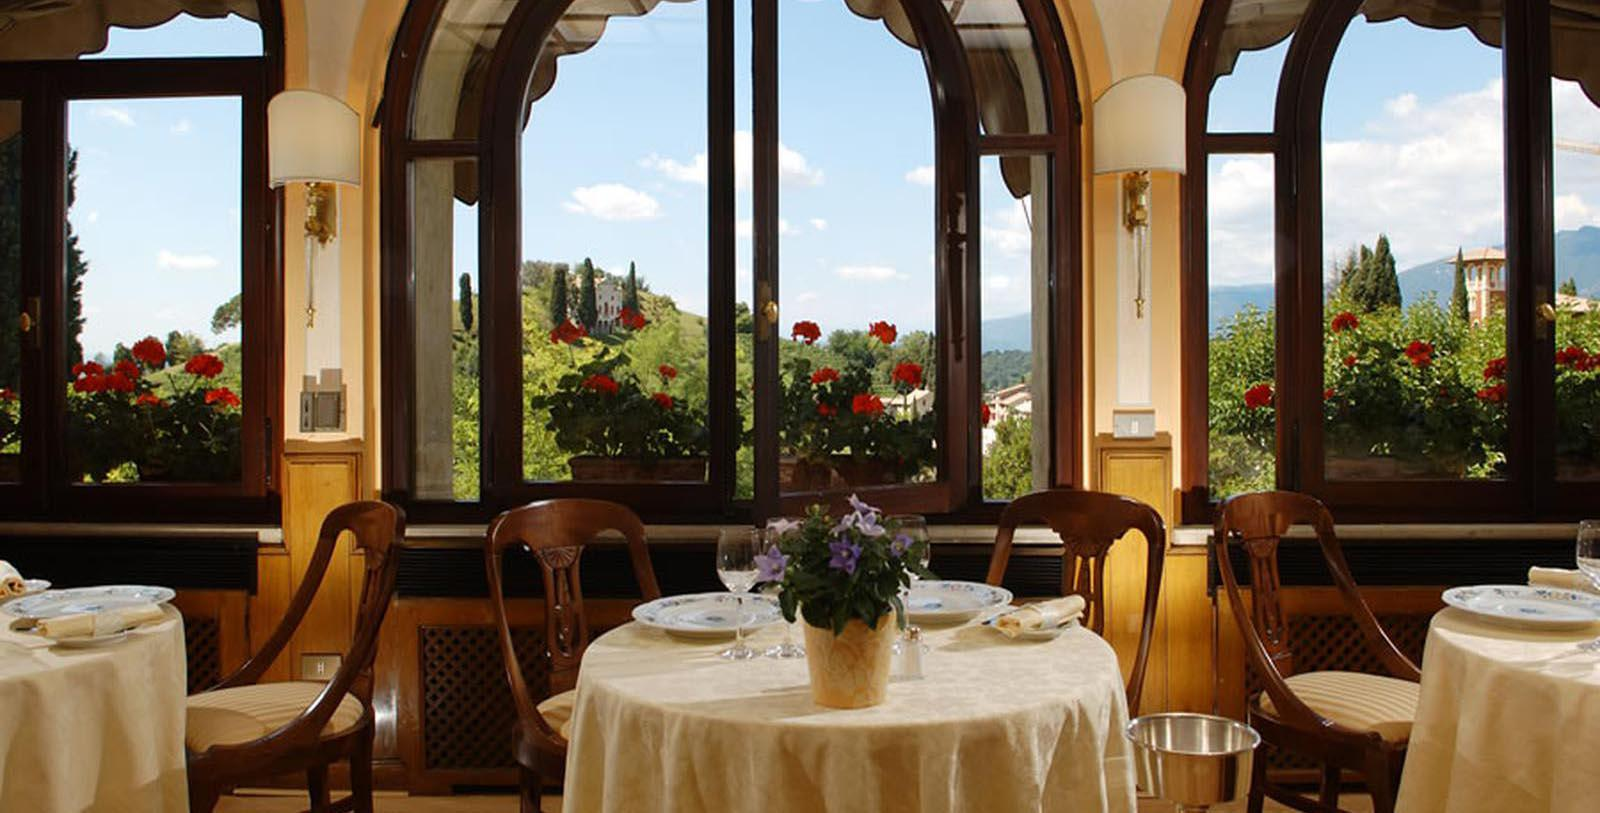 Image of Villa Cipriani Restaurant Hotel Villa Cipriani, 1889, Member of Historic Hotels Worldwide, in Asolo, Italy, Taste